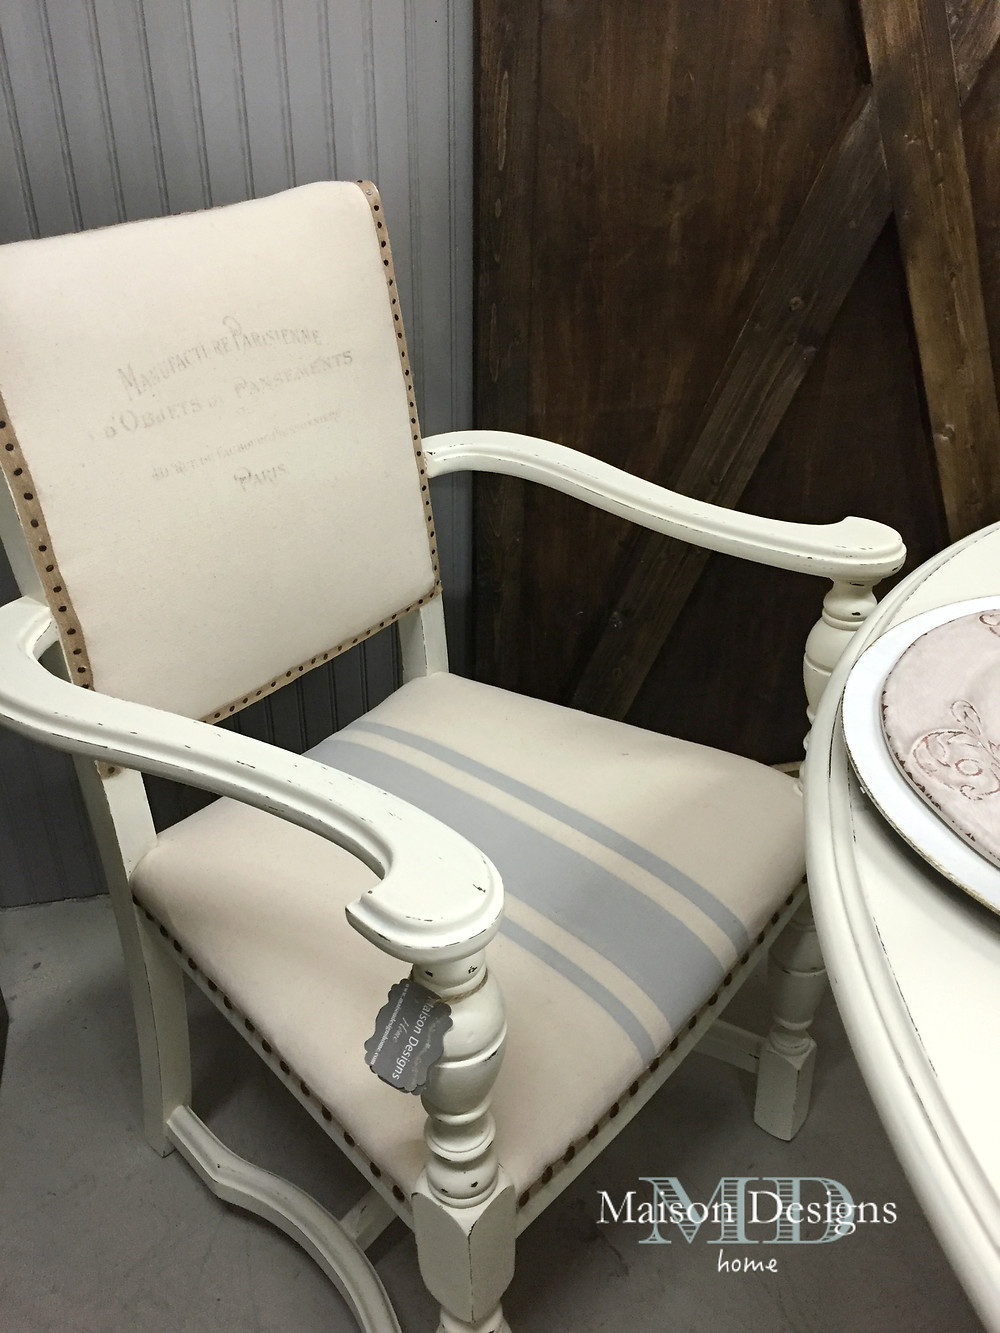 French Country Chairs ~ Maison Designs Home